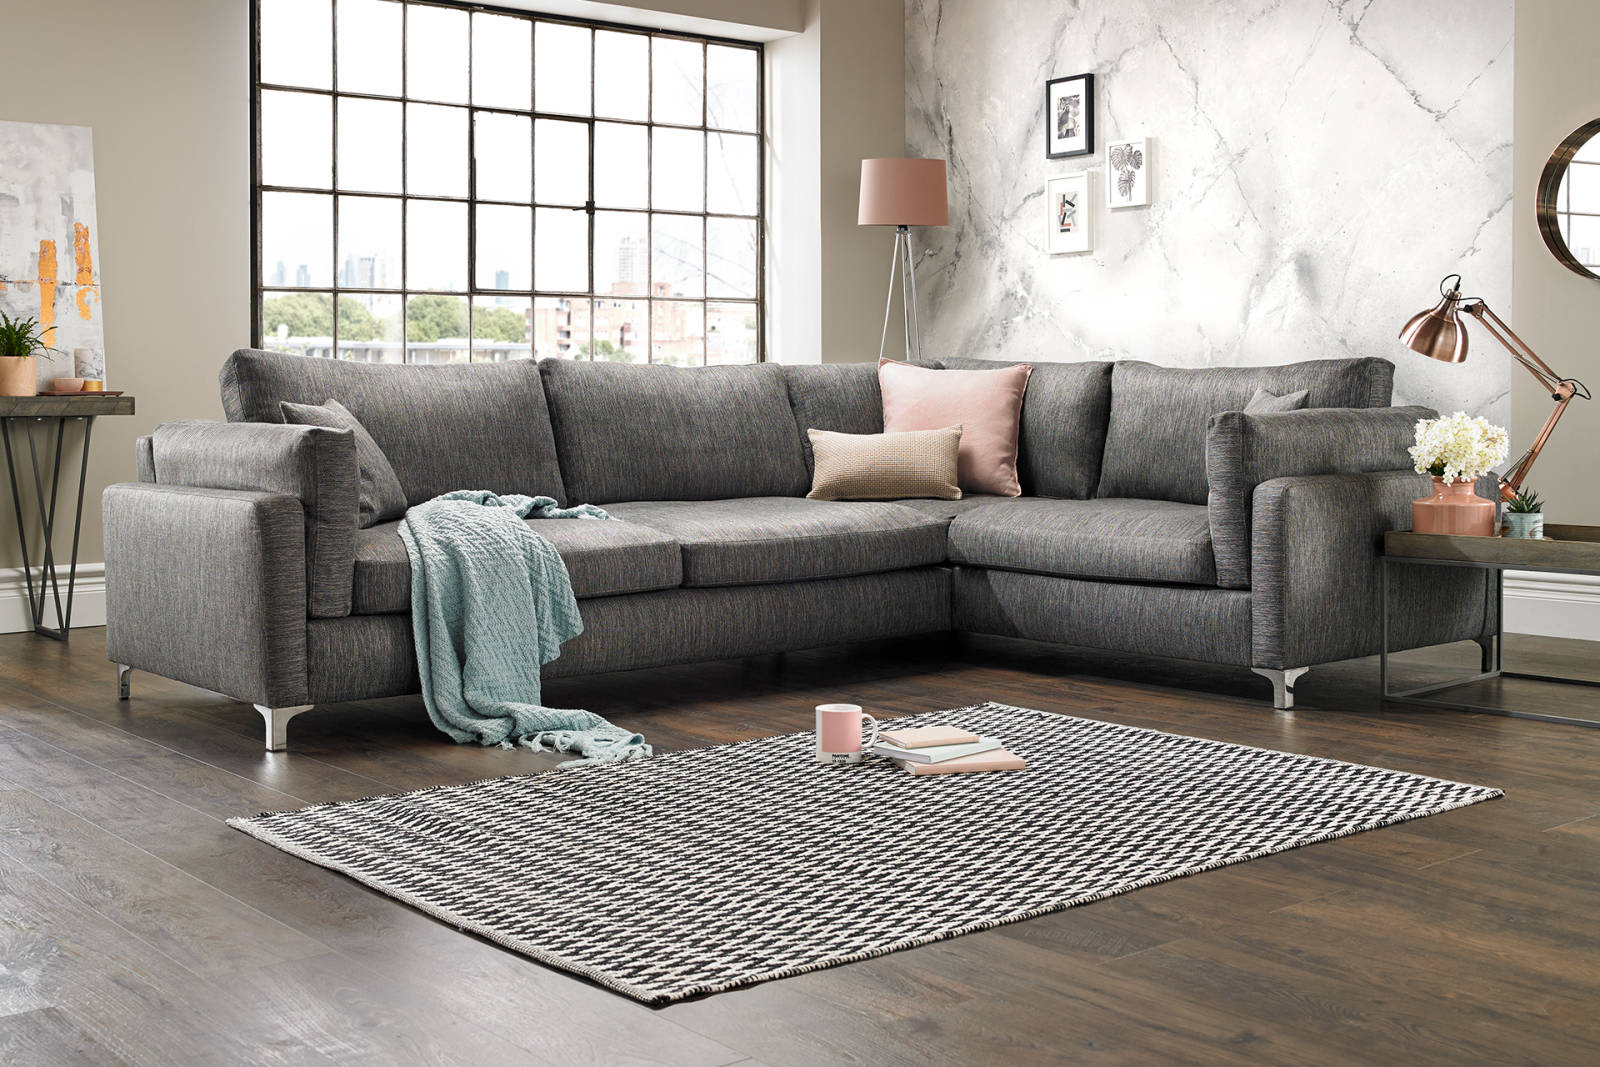 Home interiors choosing a sofa with sofology thou shalt not covet - Choosing the best slipcover fabrics for your home ...